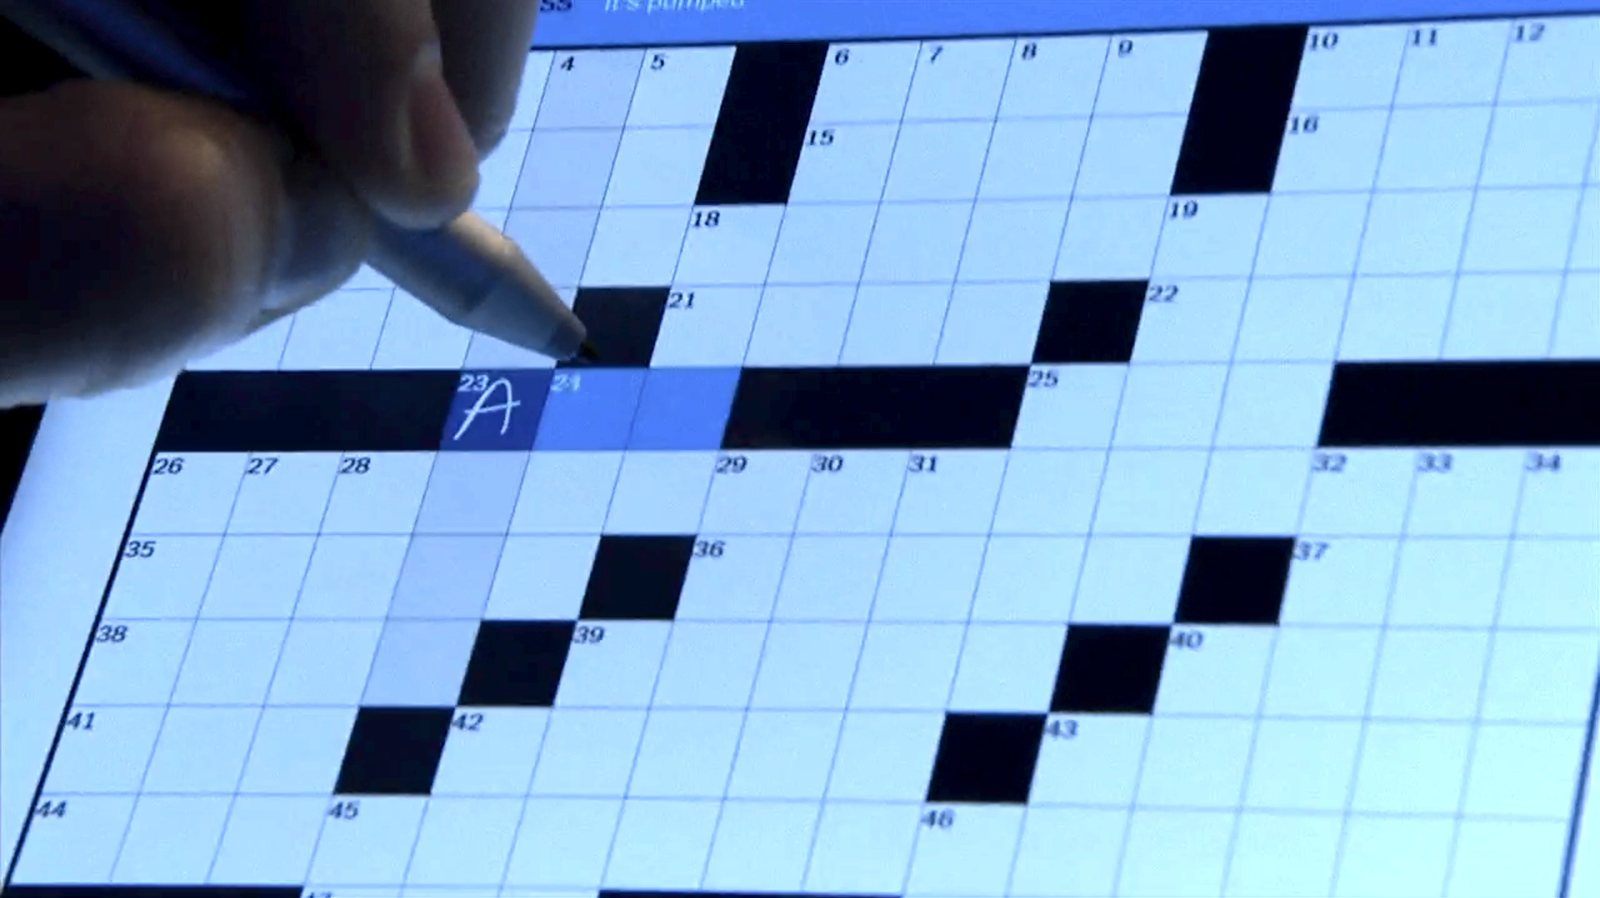 Panos Panay writes the letter 'A' into a box on a crossword.